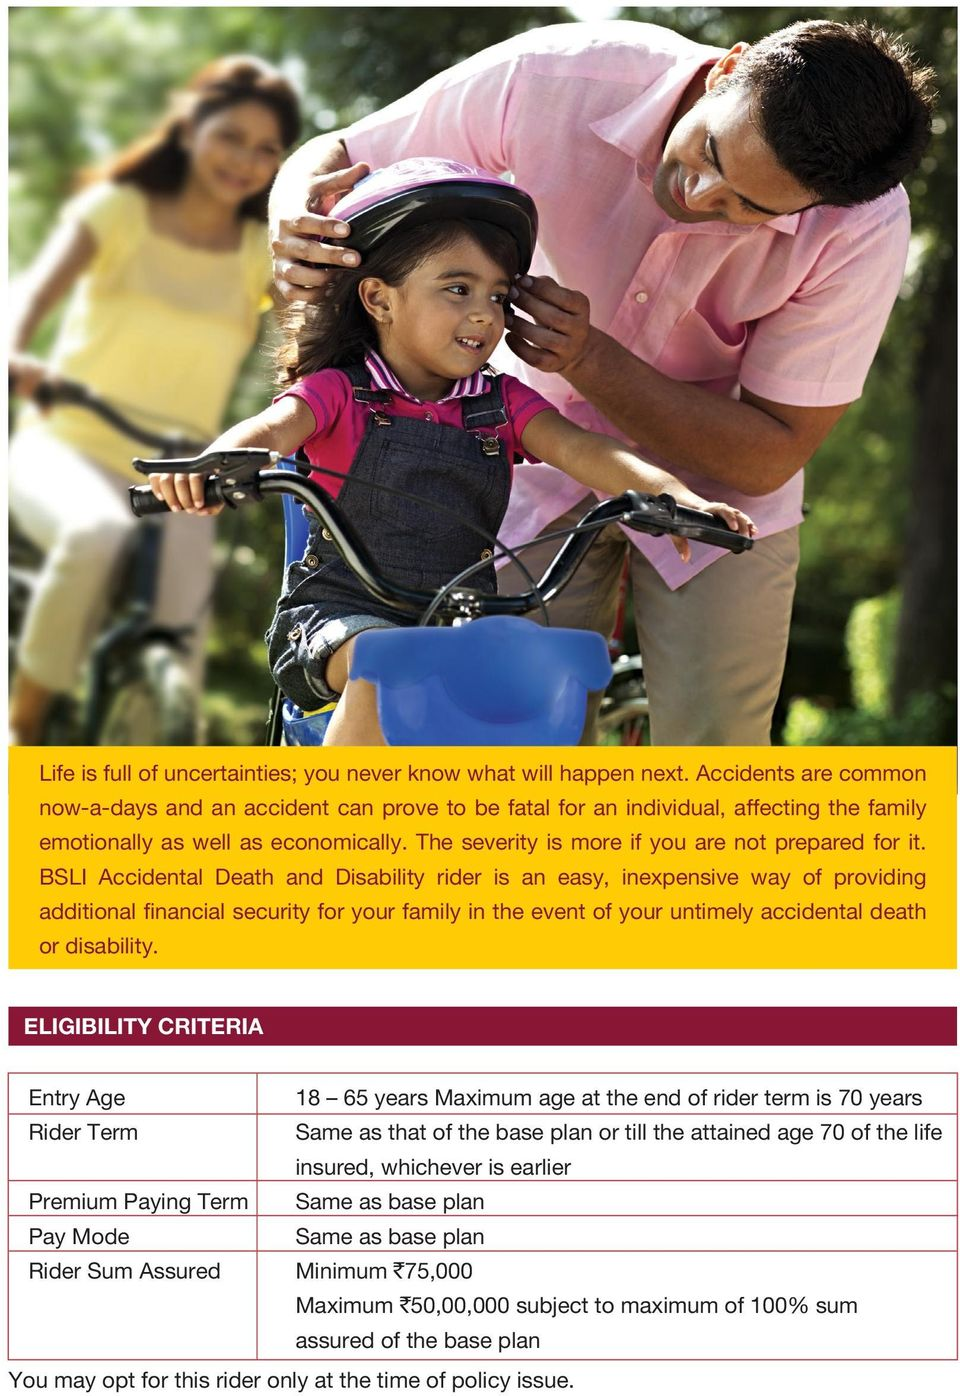 BSLI Accidental Death and Disability rider is an easy, inexpensive way of providing additional financial security for your family in the event of your untimely accidental death or disability.